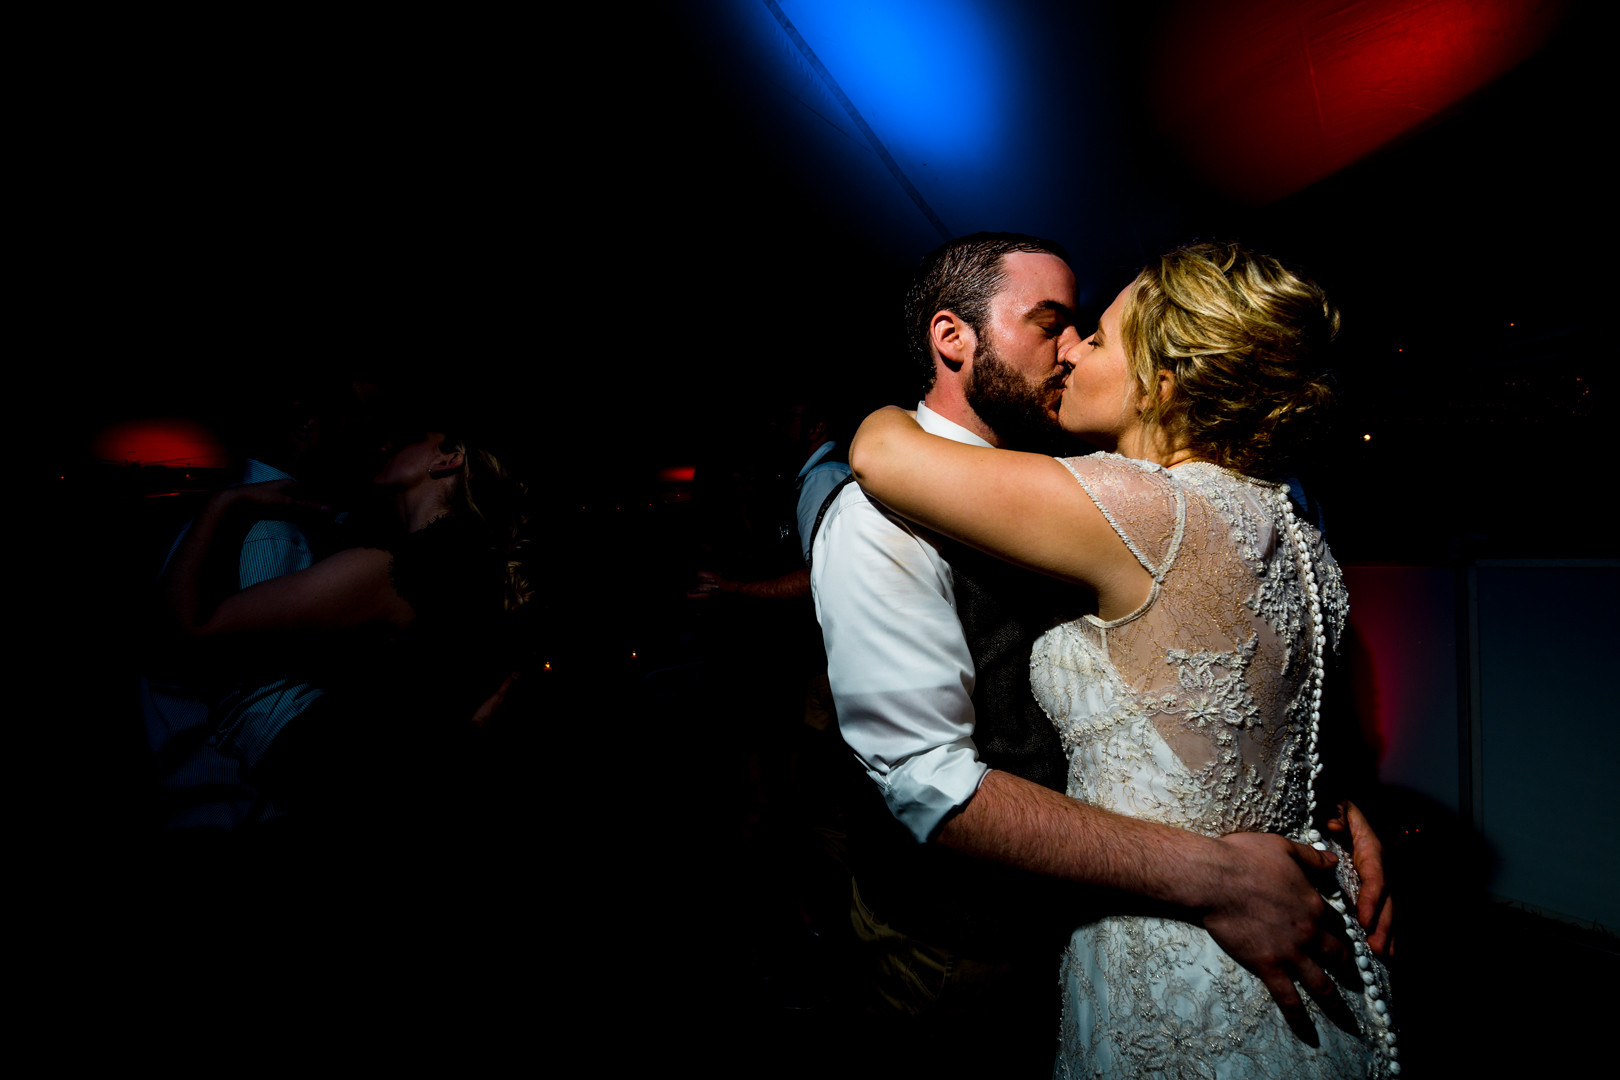 Vermont Bride and Groom Dancing Kissing